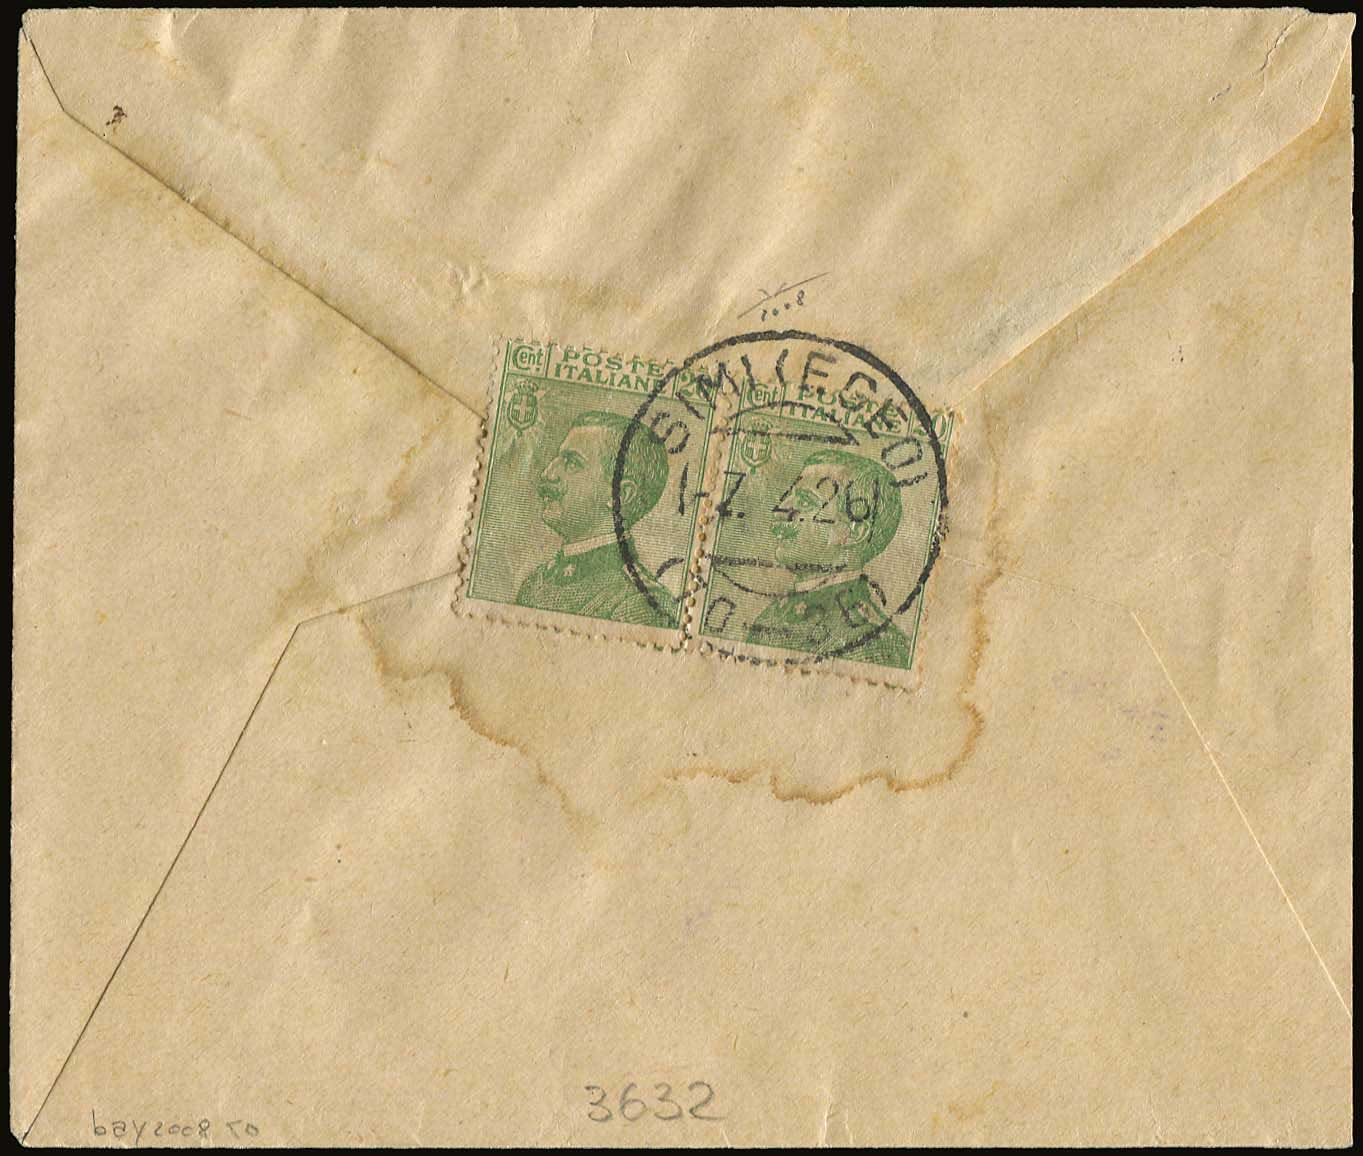 Lot 630 - -  DODECANESE italian dodecanese - italian post office issues -  A. Karamitsos Postal & Live Internet Auction 678 General Philatelic Auction